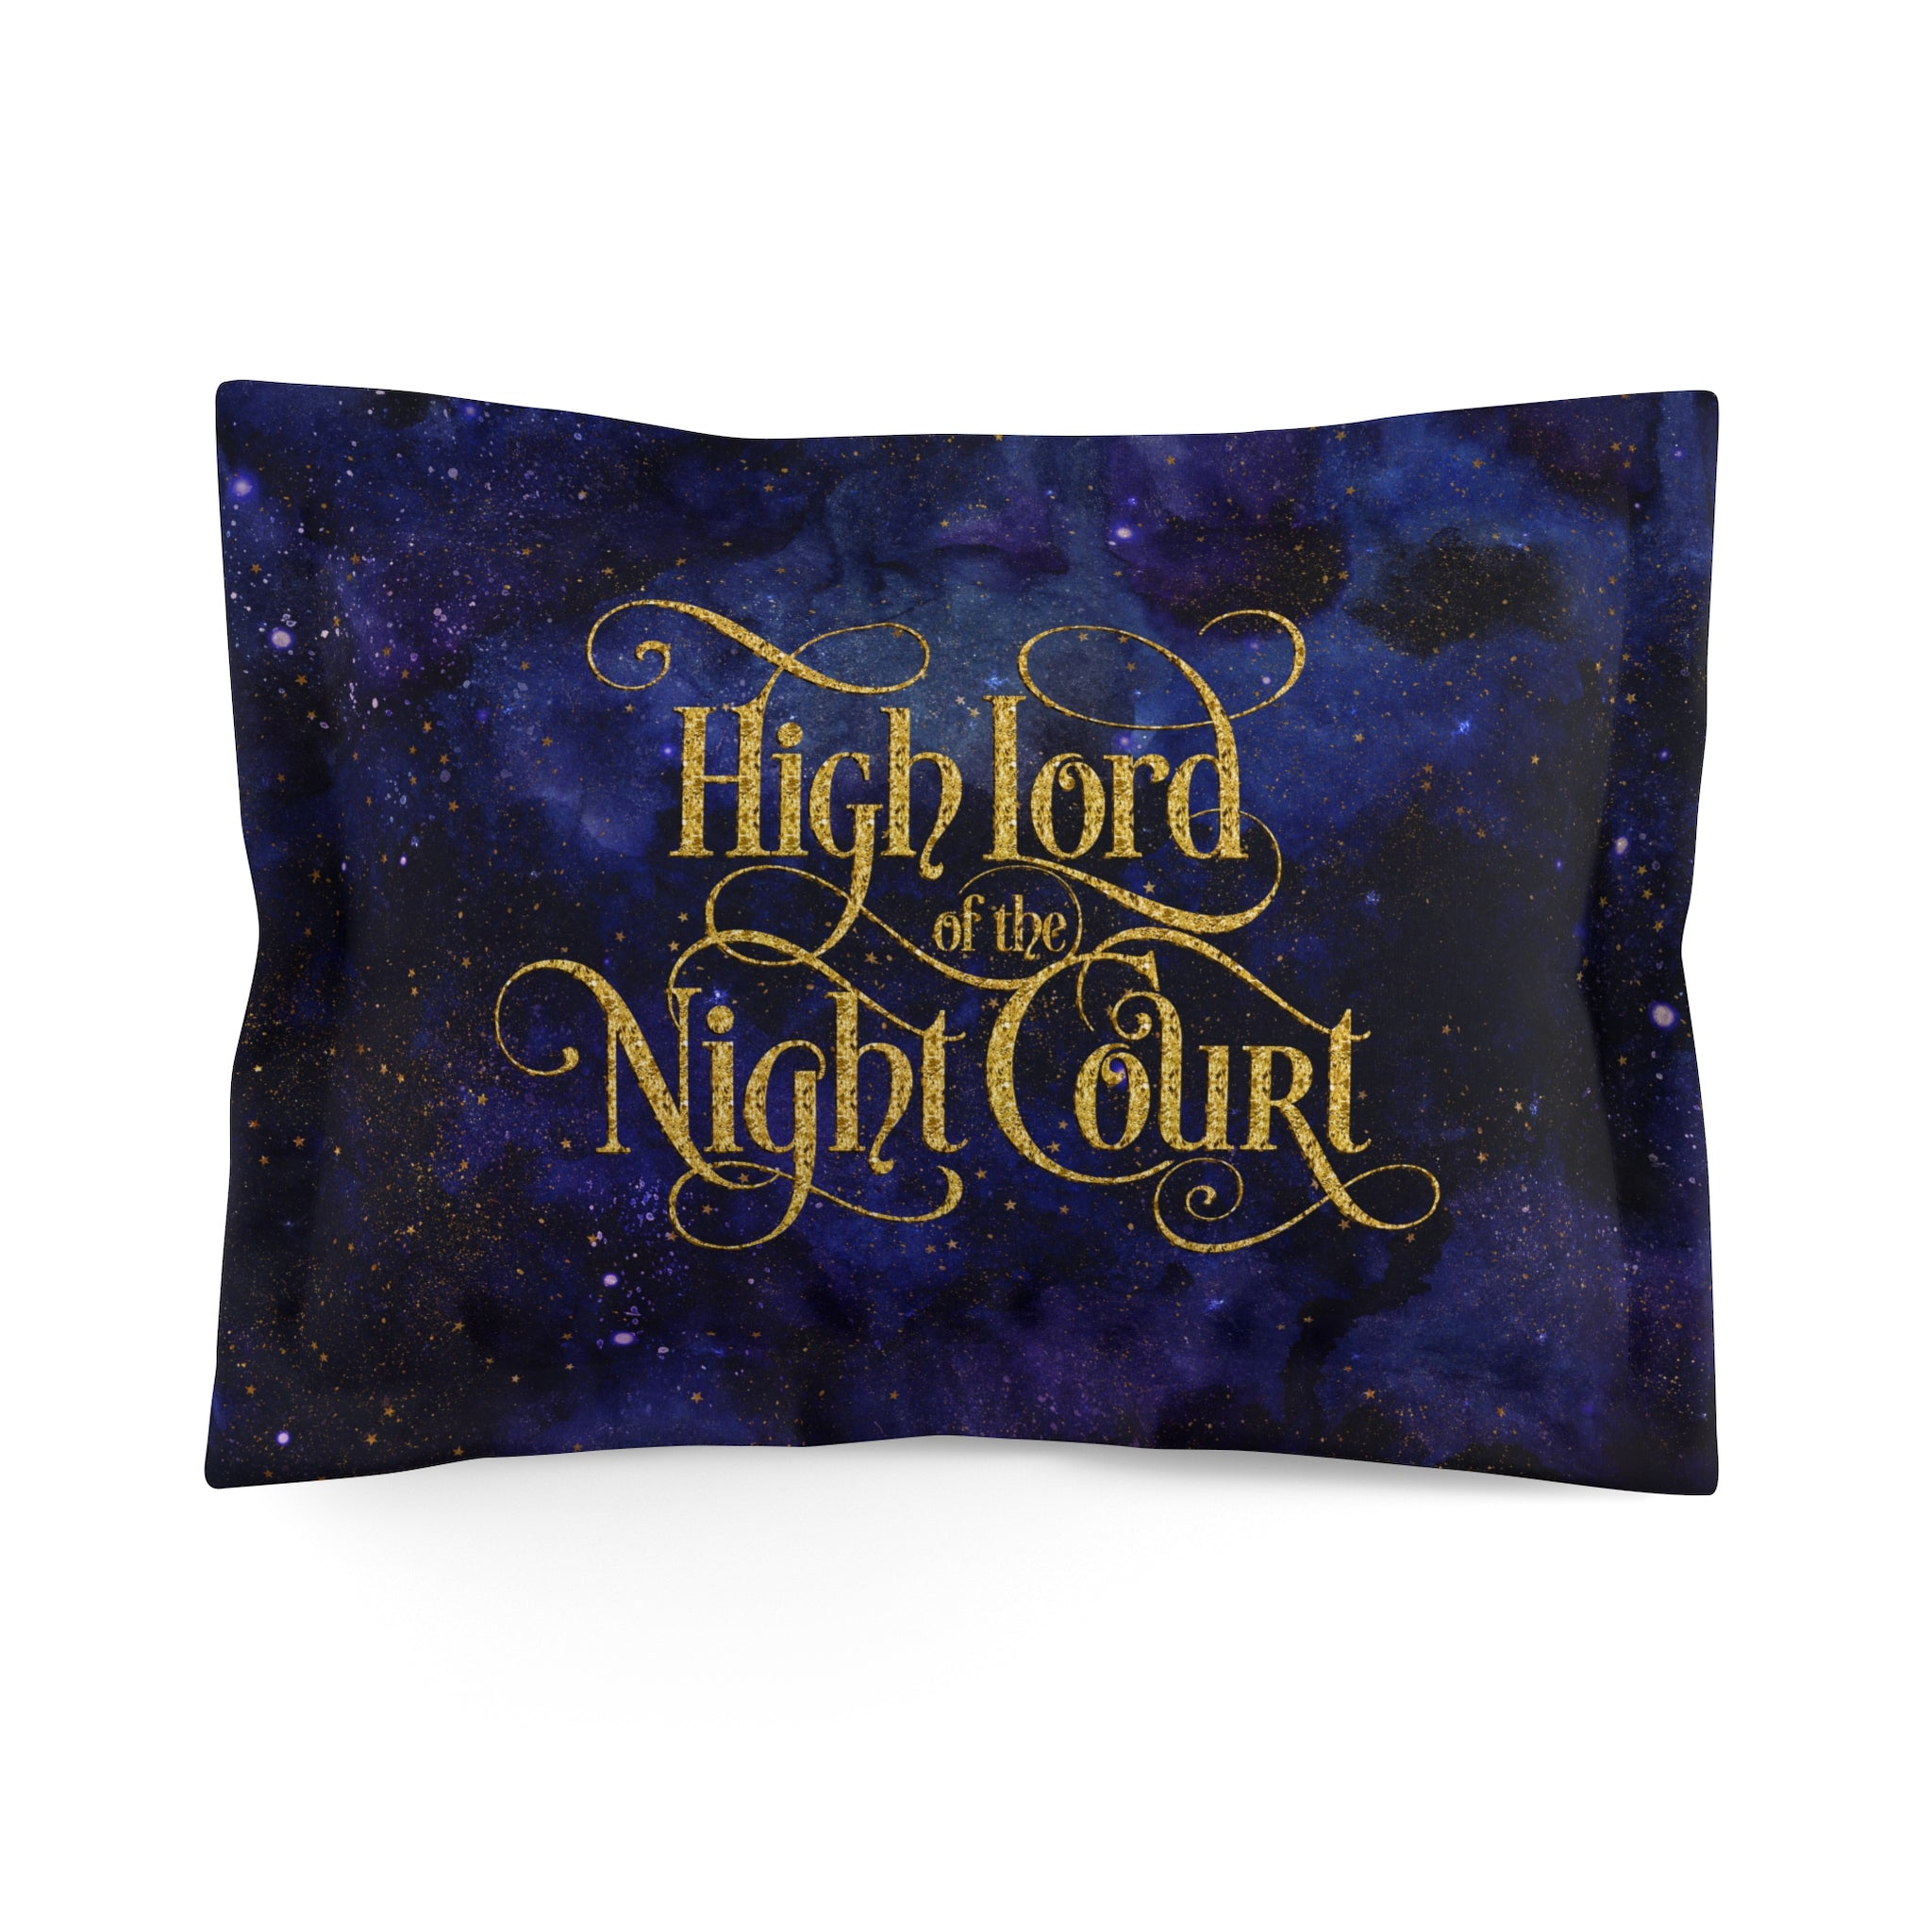 High Lord of the Night Court Quote Pillow Sham - LitLifeCo.